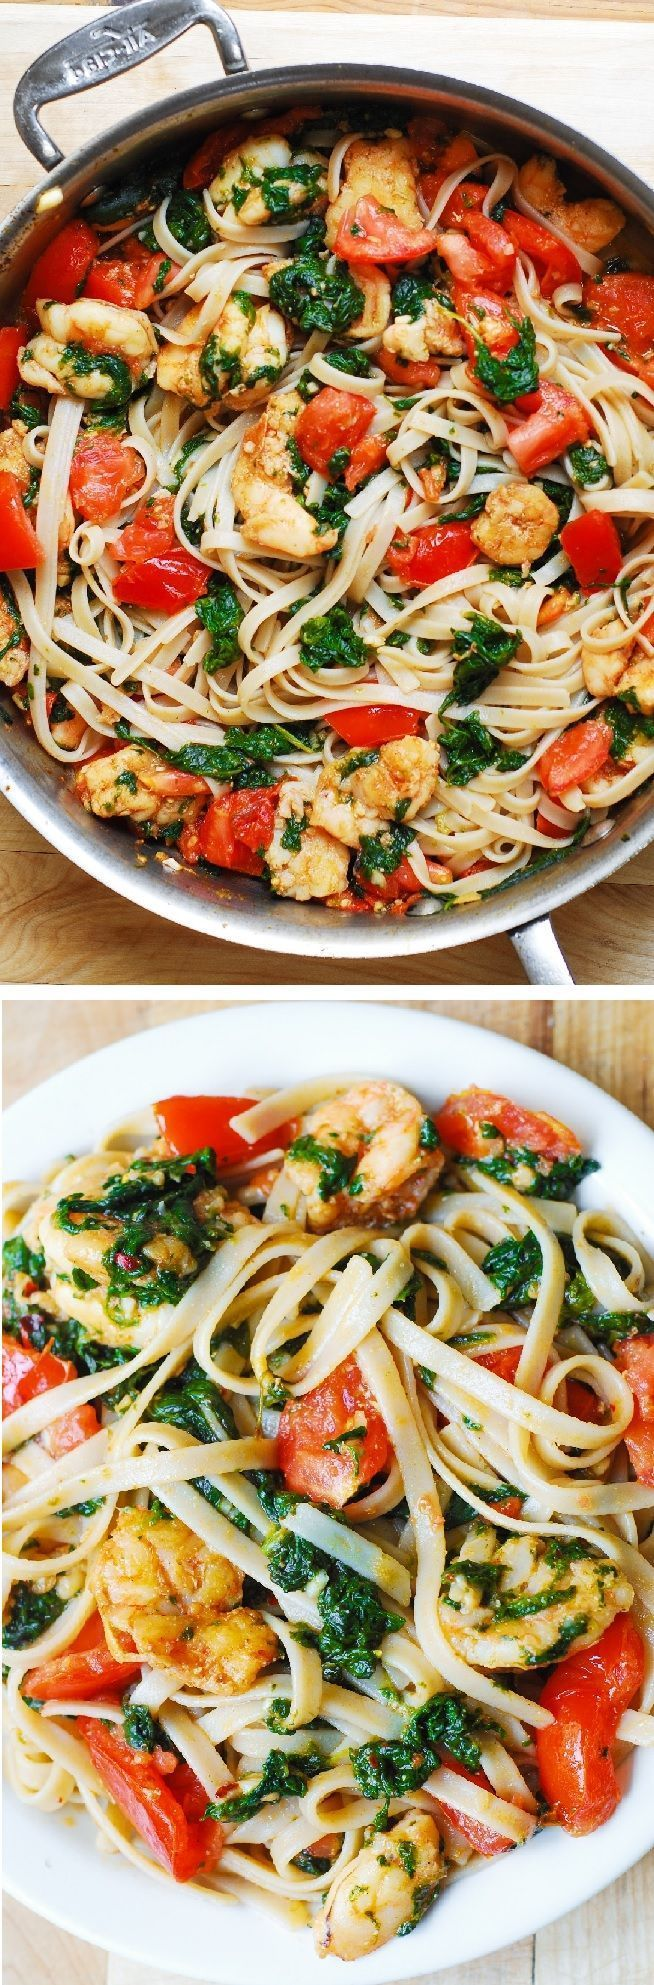 Shrimp, fresh tomatoes, and spinach with fettuccine pasta in garlic butter sauce. So refreshing, spicy, and Italian! (Spinach Recipes Rice)